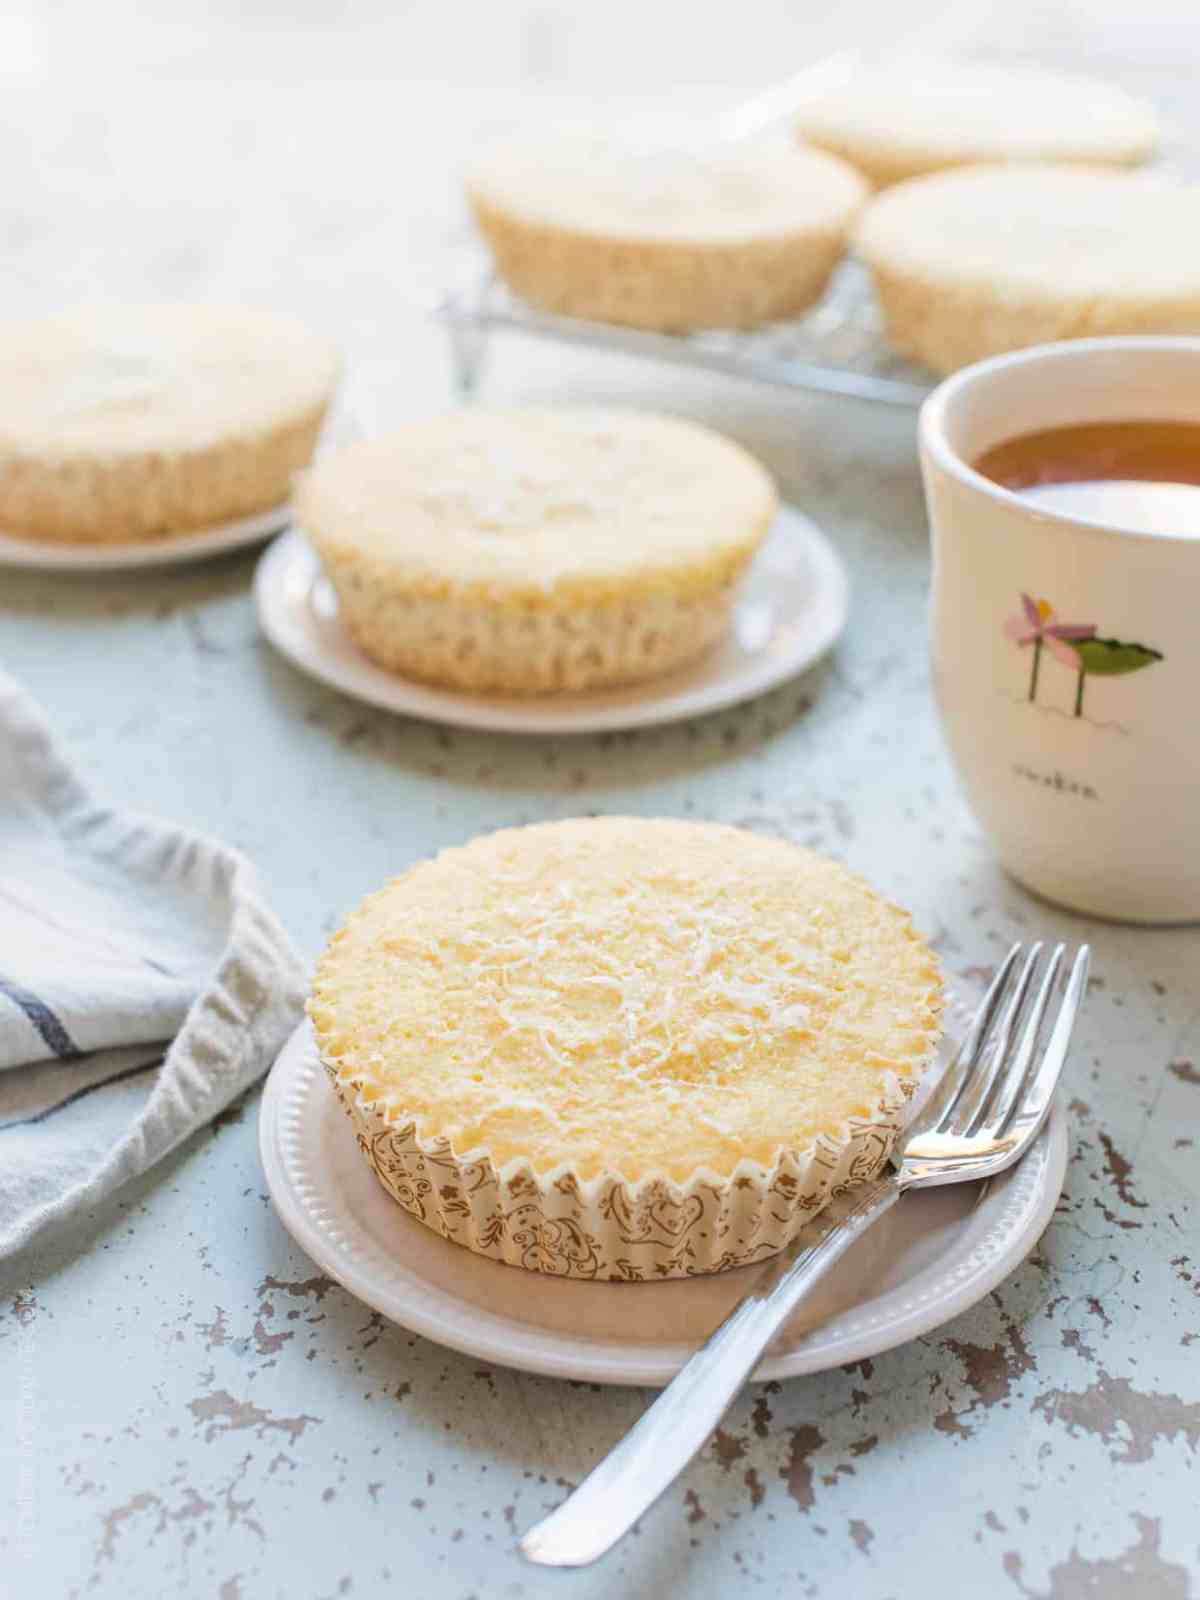 Mamon is a very light and airy Filipino Sponge Cake and a classic snack cake found in bakeries in the Philippines. Make it at home with this simple recipe.